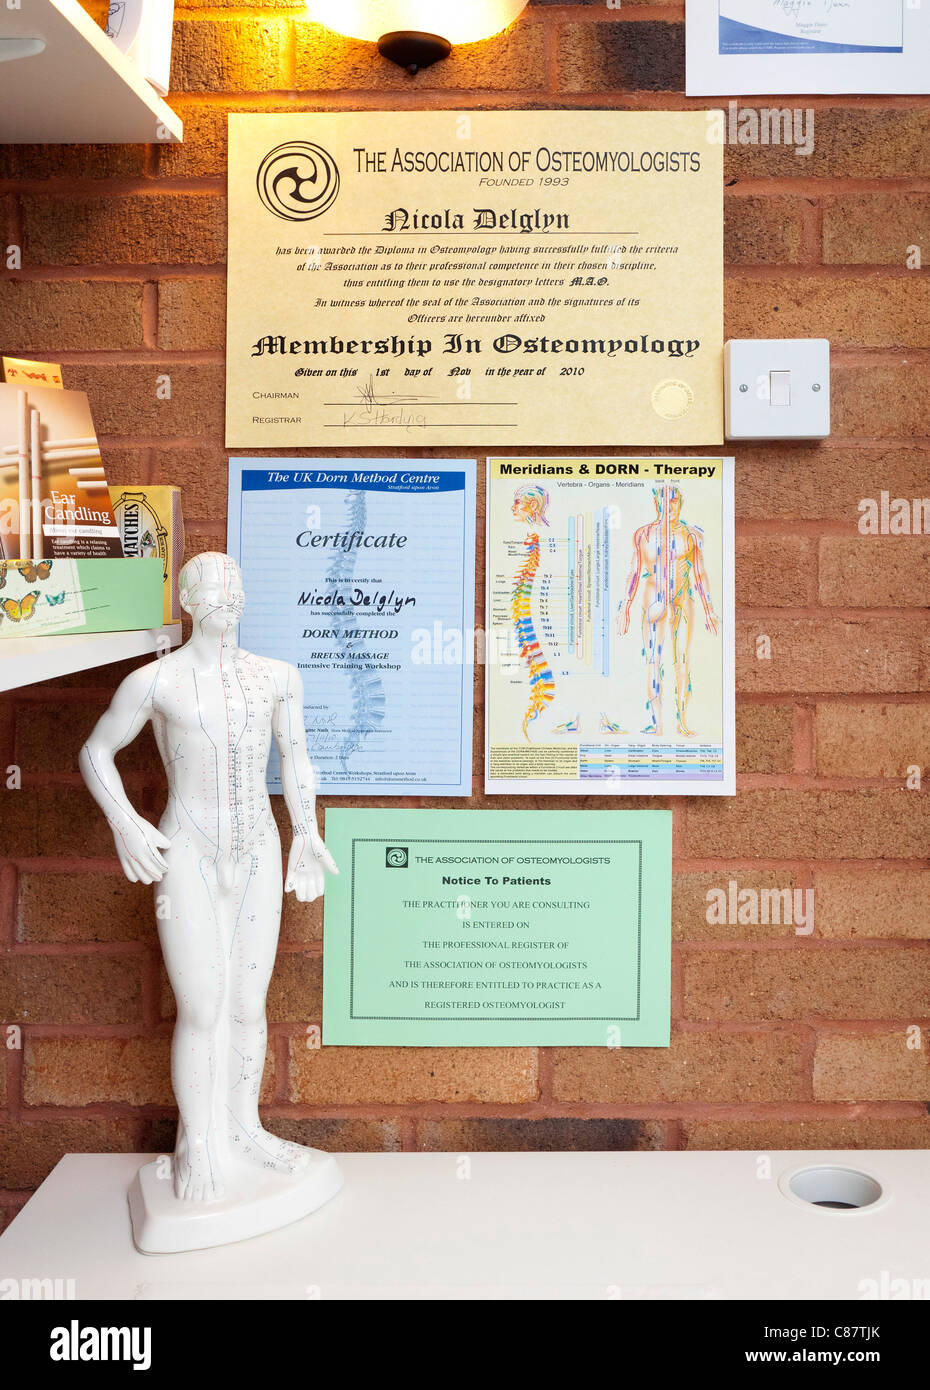 qualifications & certificates for an osteomyolist health therapist Stock Photo